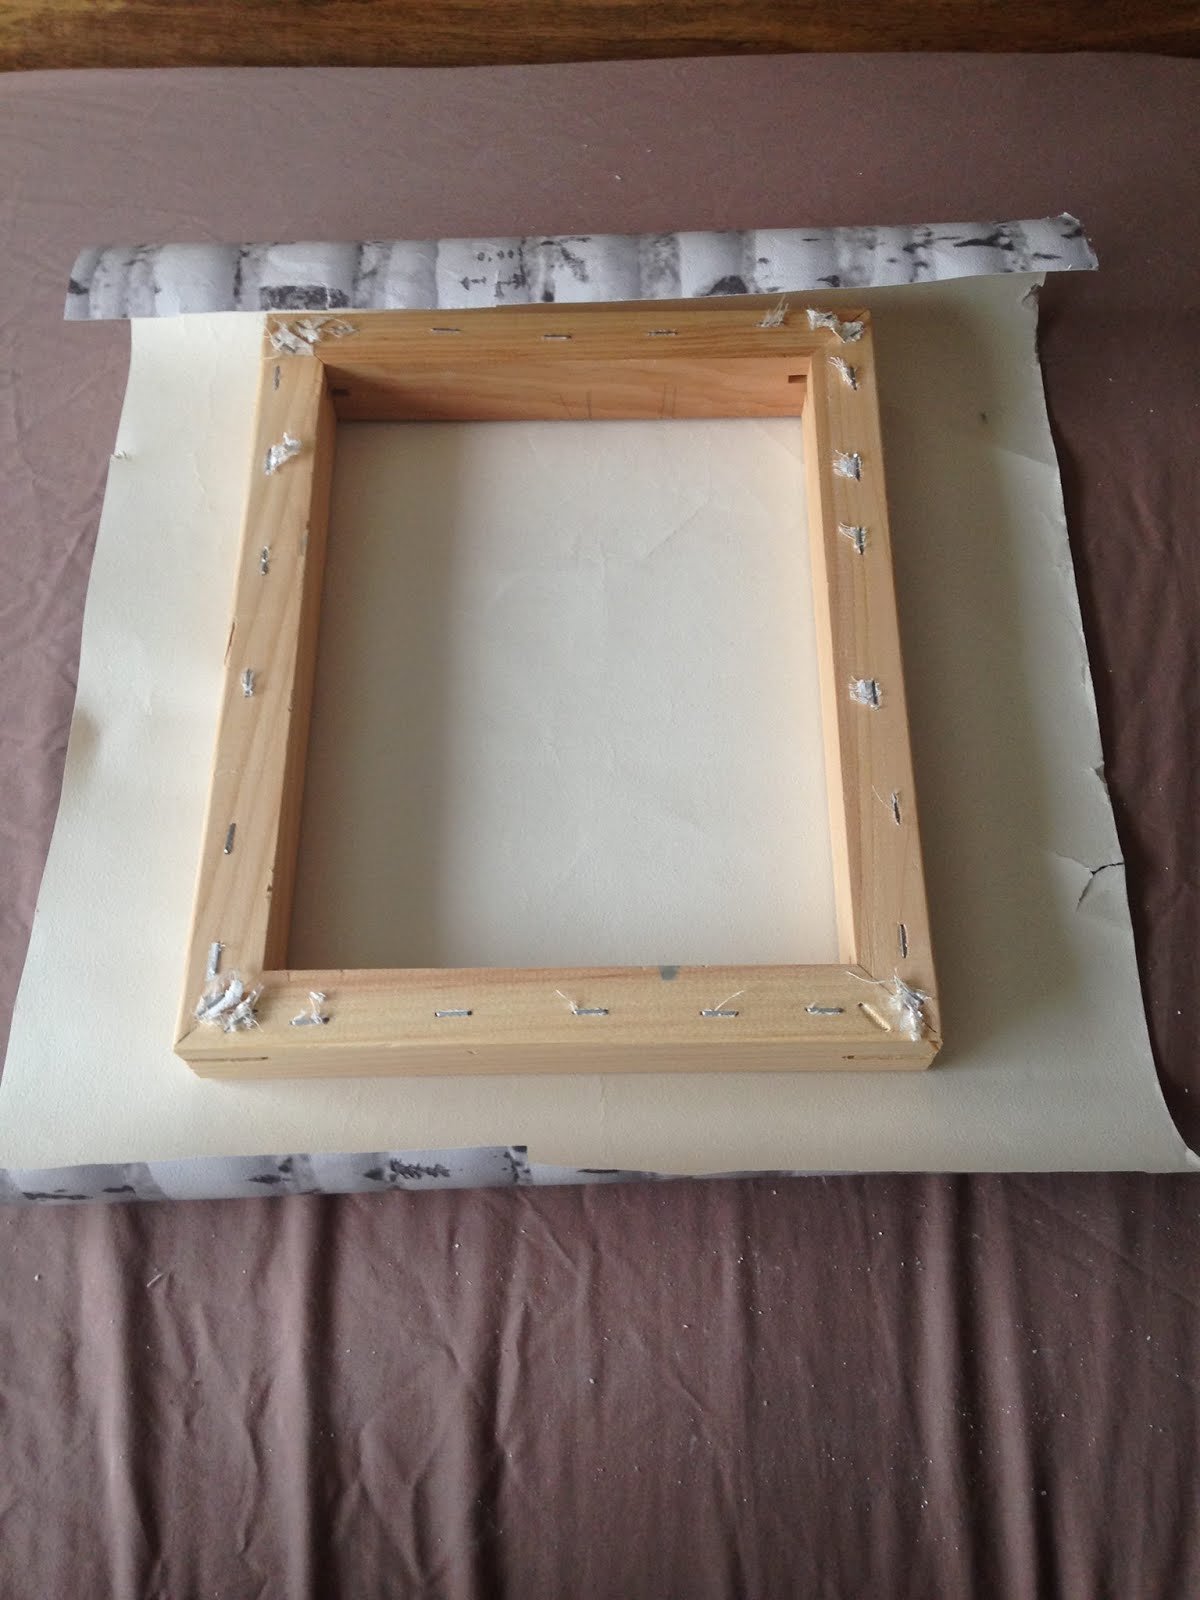 Jess bodhi diy photo frames bedroom facelift once in place you will need a stapler to hold the wallpaper in place into the wooden frame dont go mad with staples tho as its only paper and will hold jeuxipadfo Choice Image